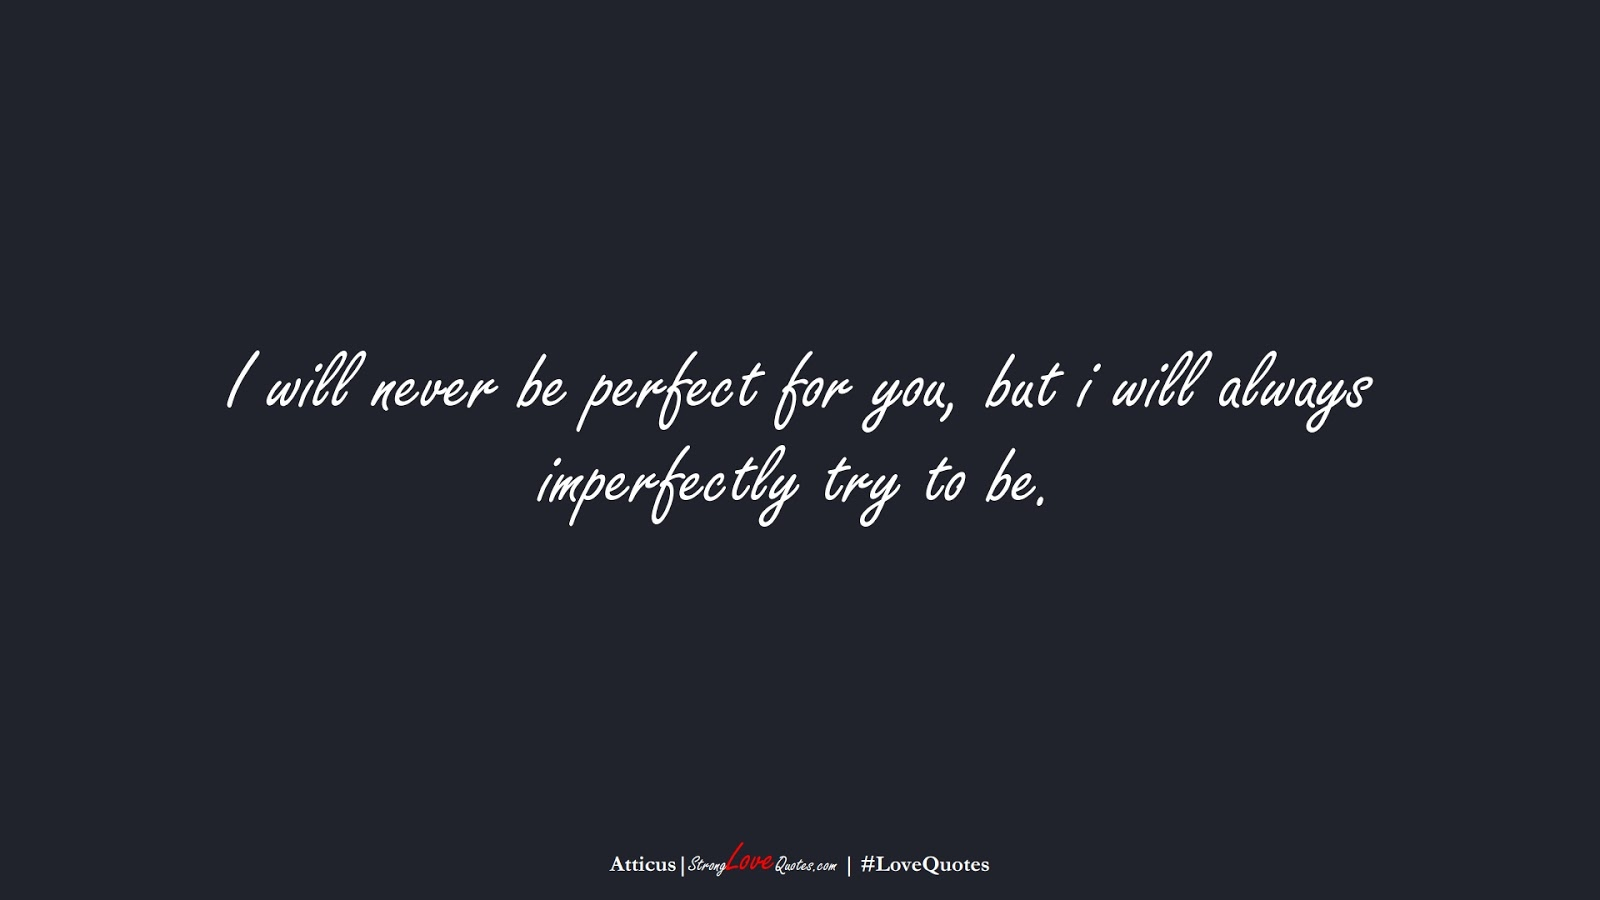 I will never be perfect for you, but i will always imperfectly try to be. (Atticus);  #LoveQuotes